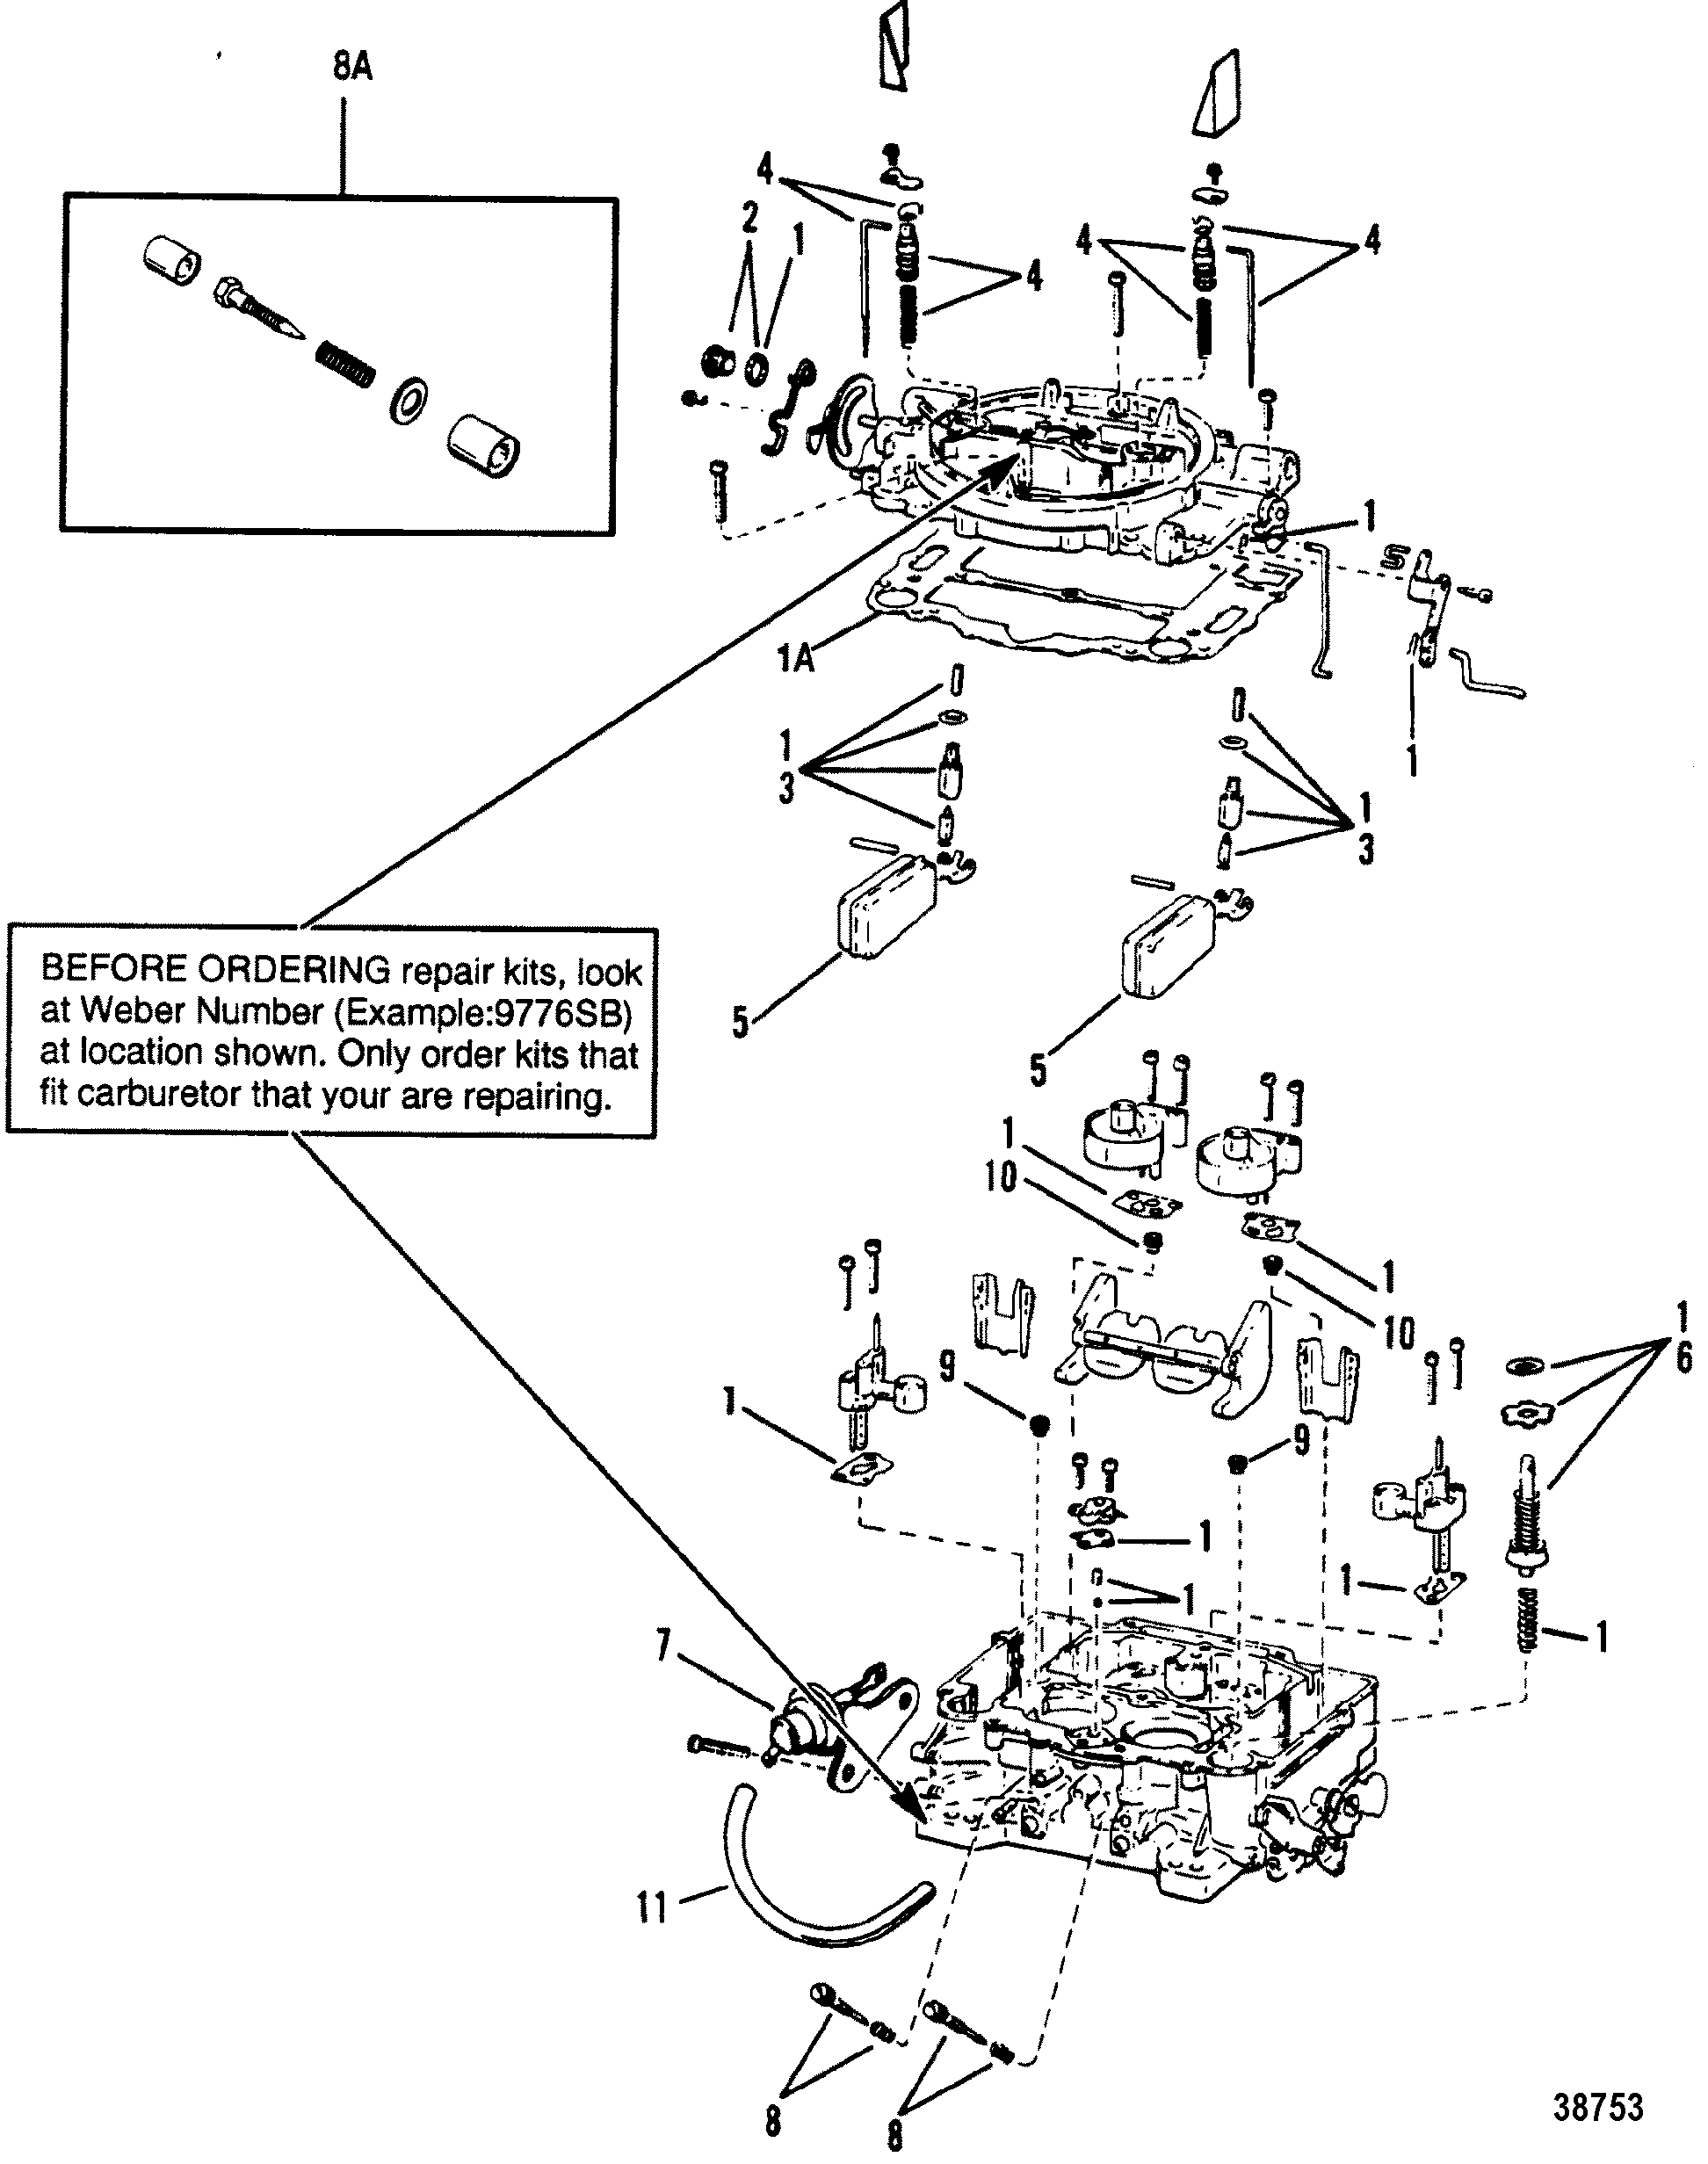 1993 Mercruiser Exhaust Parts Diagram Diagram Auto